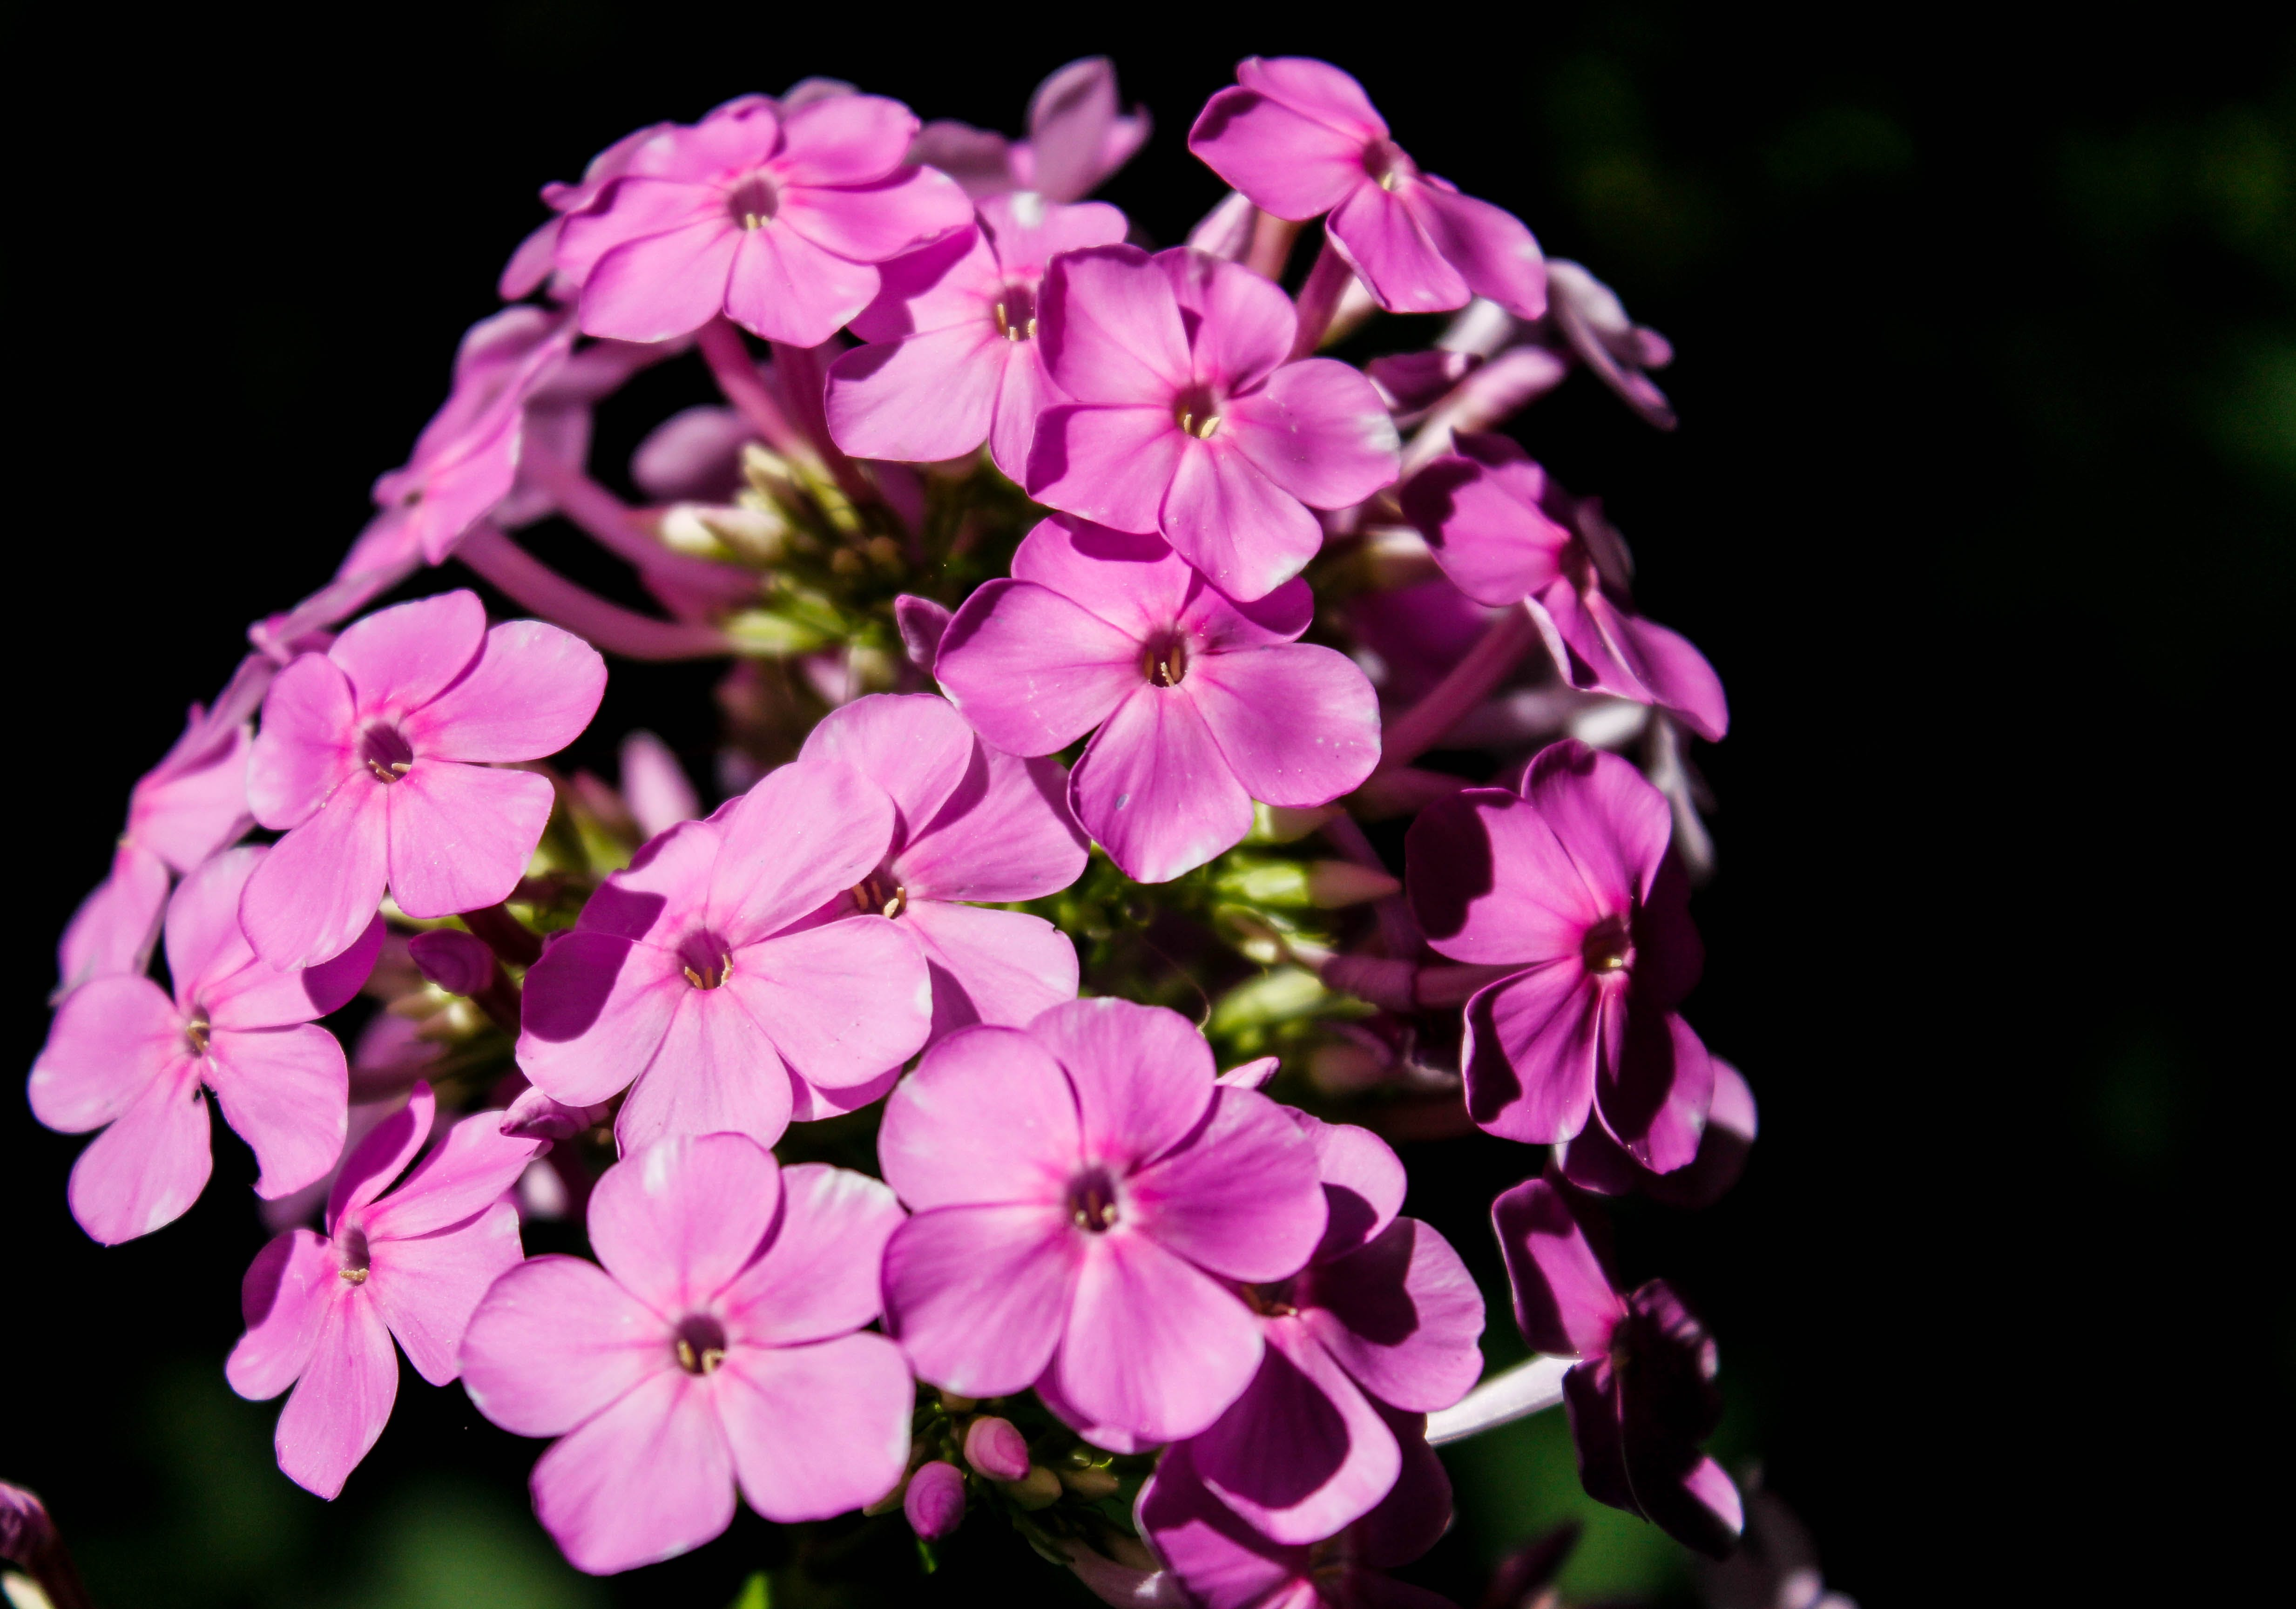 Free stock photo of beautiful flowers, blooms, bunch of flowers, flowers